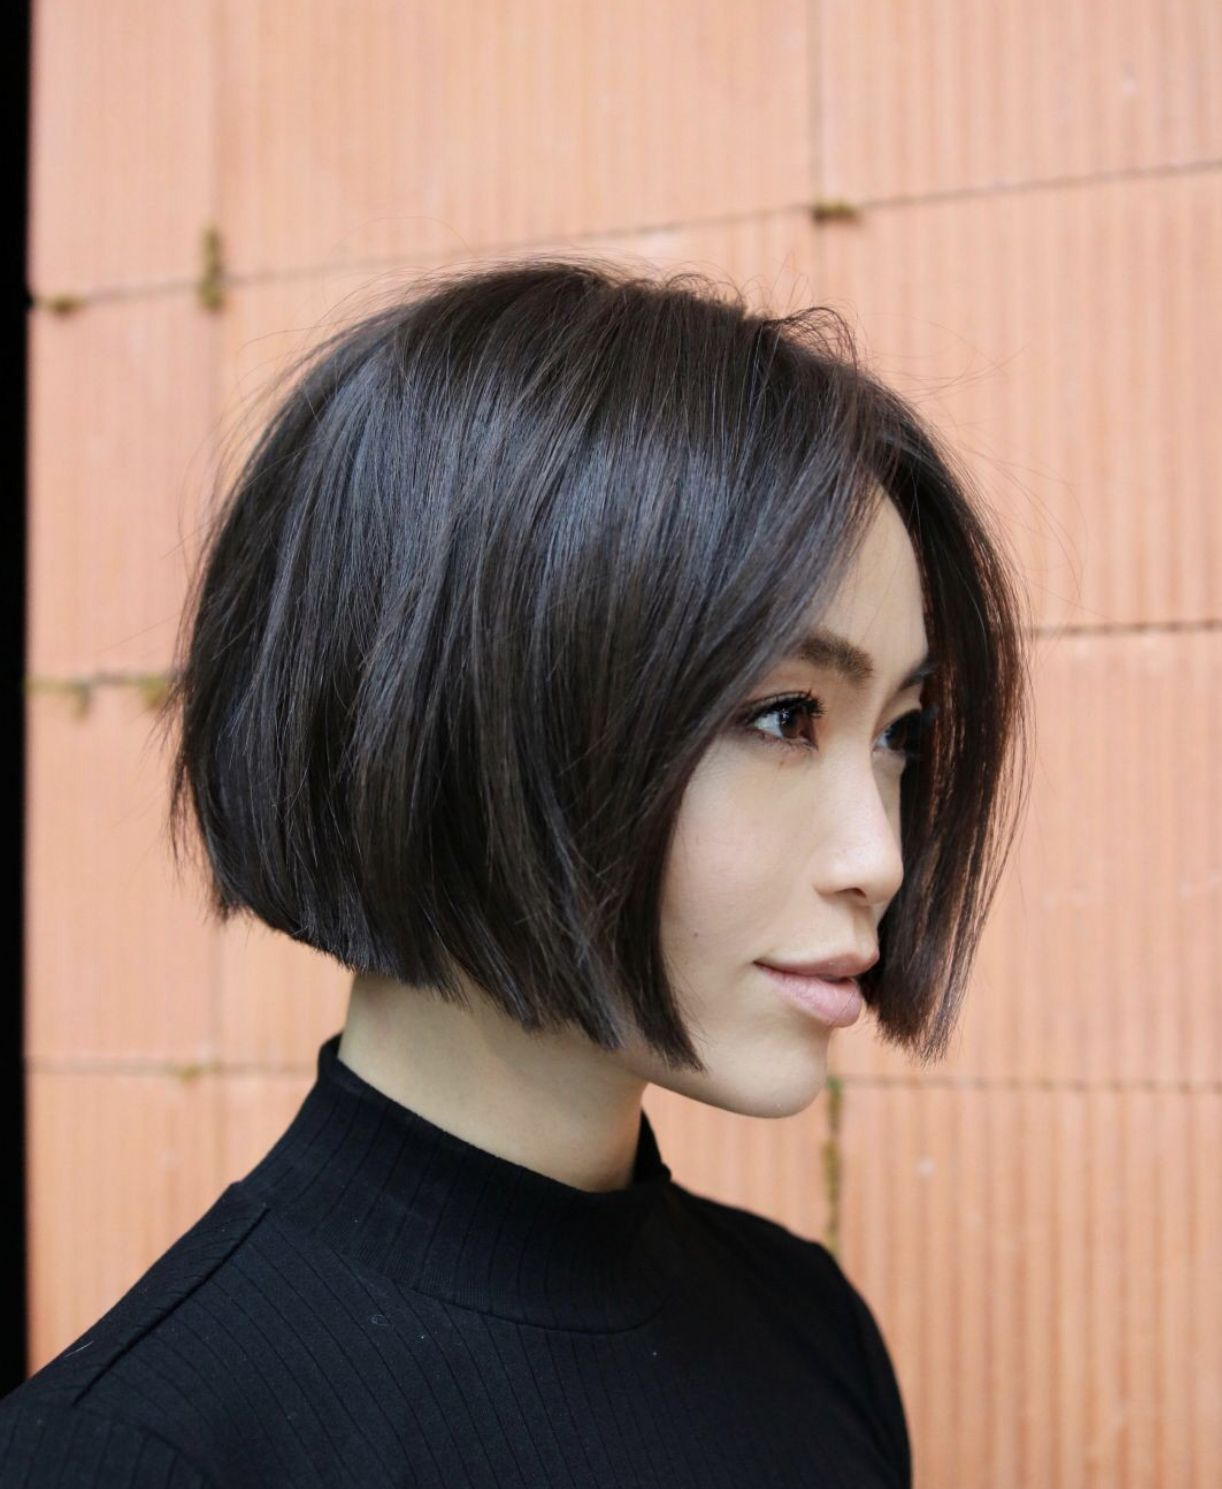 Bob-Cut Spring Hairstyles to Outshine Your Beauty